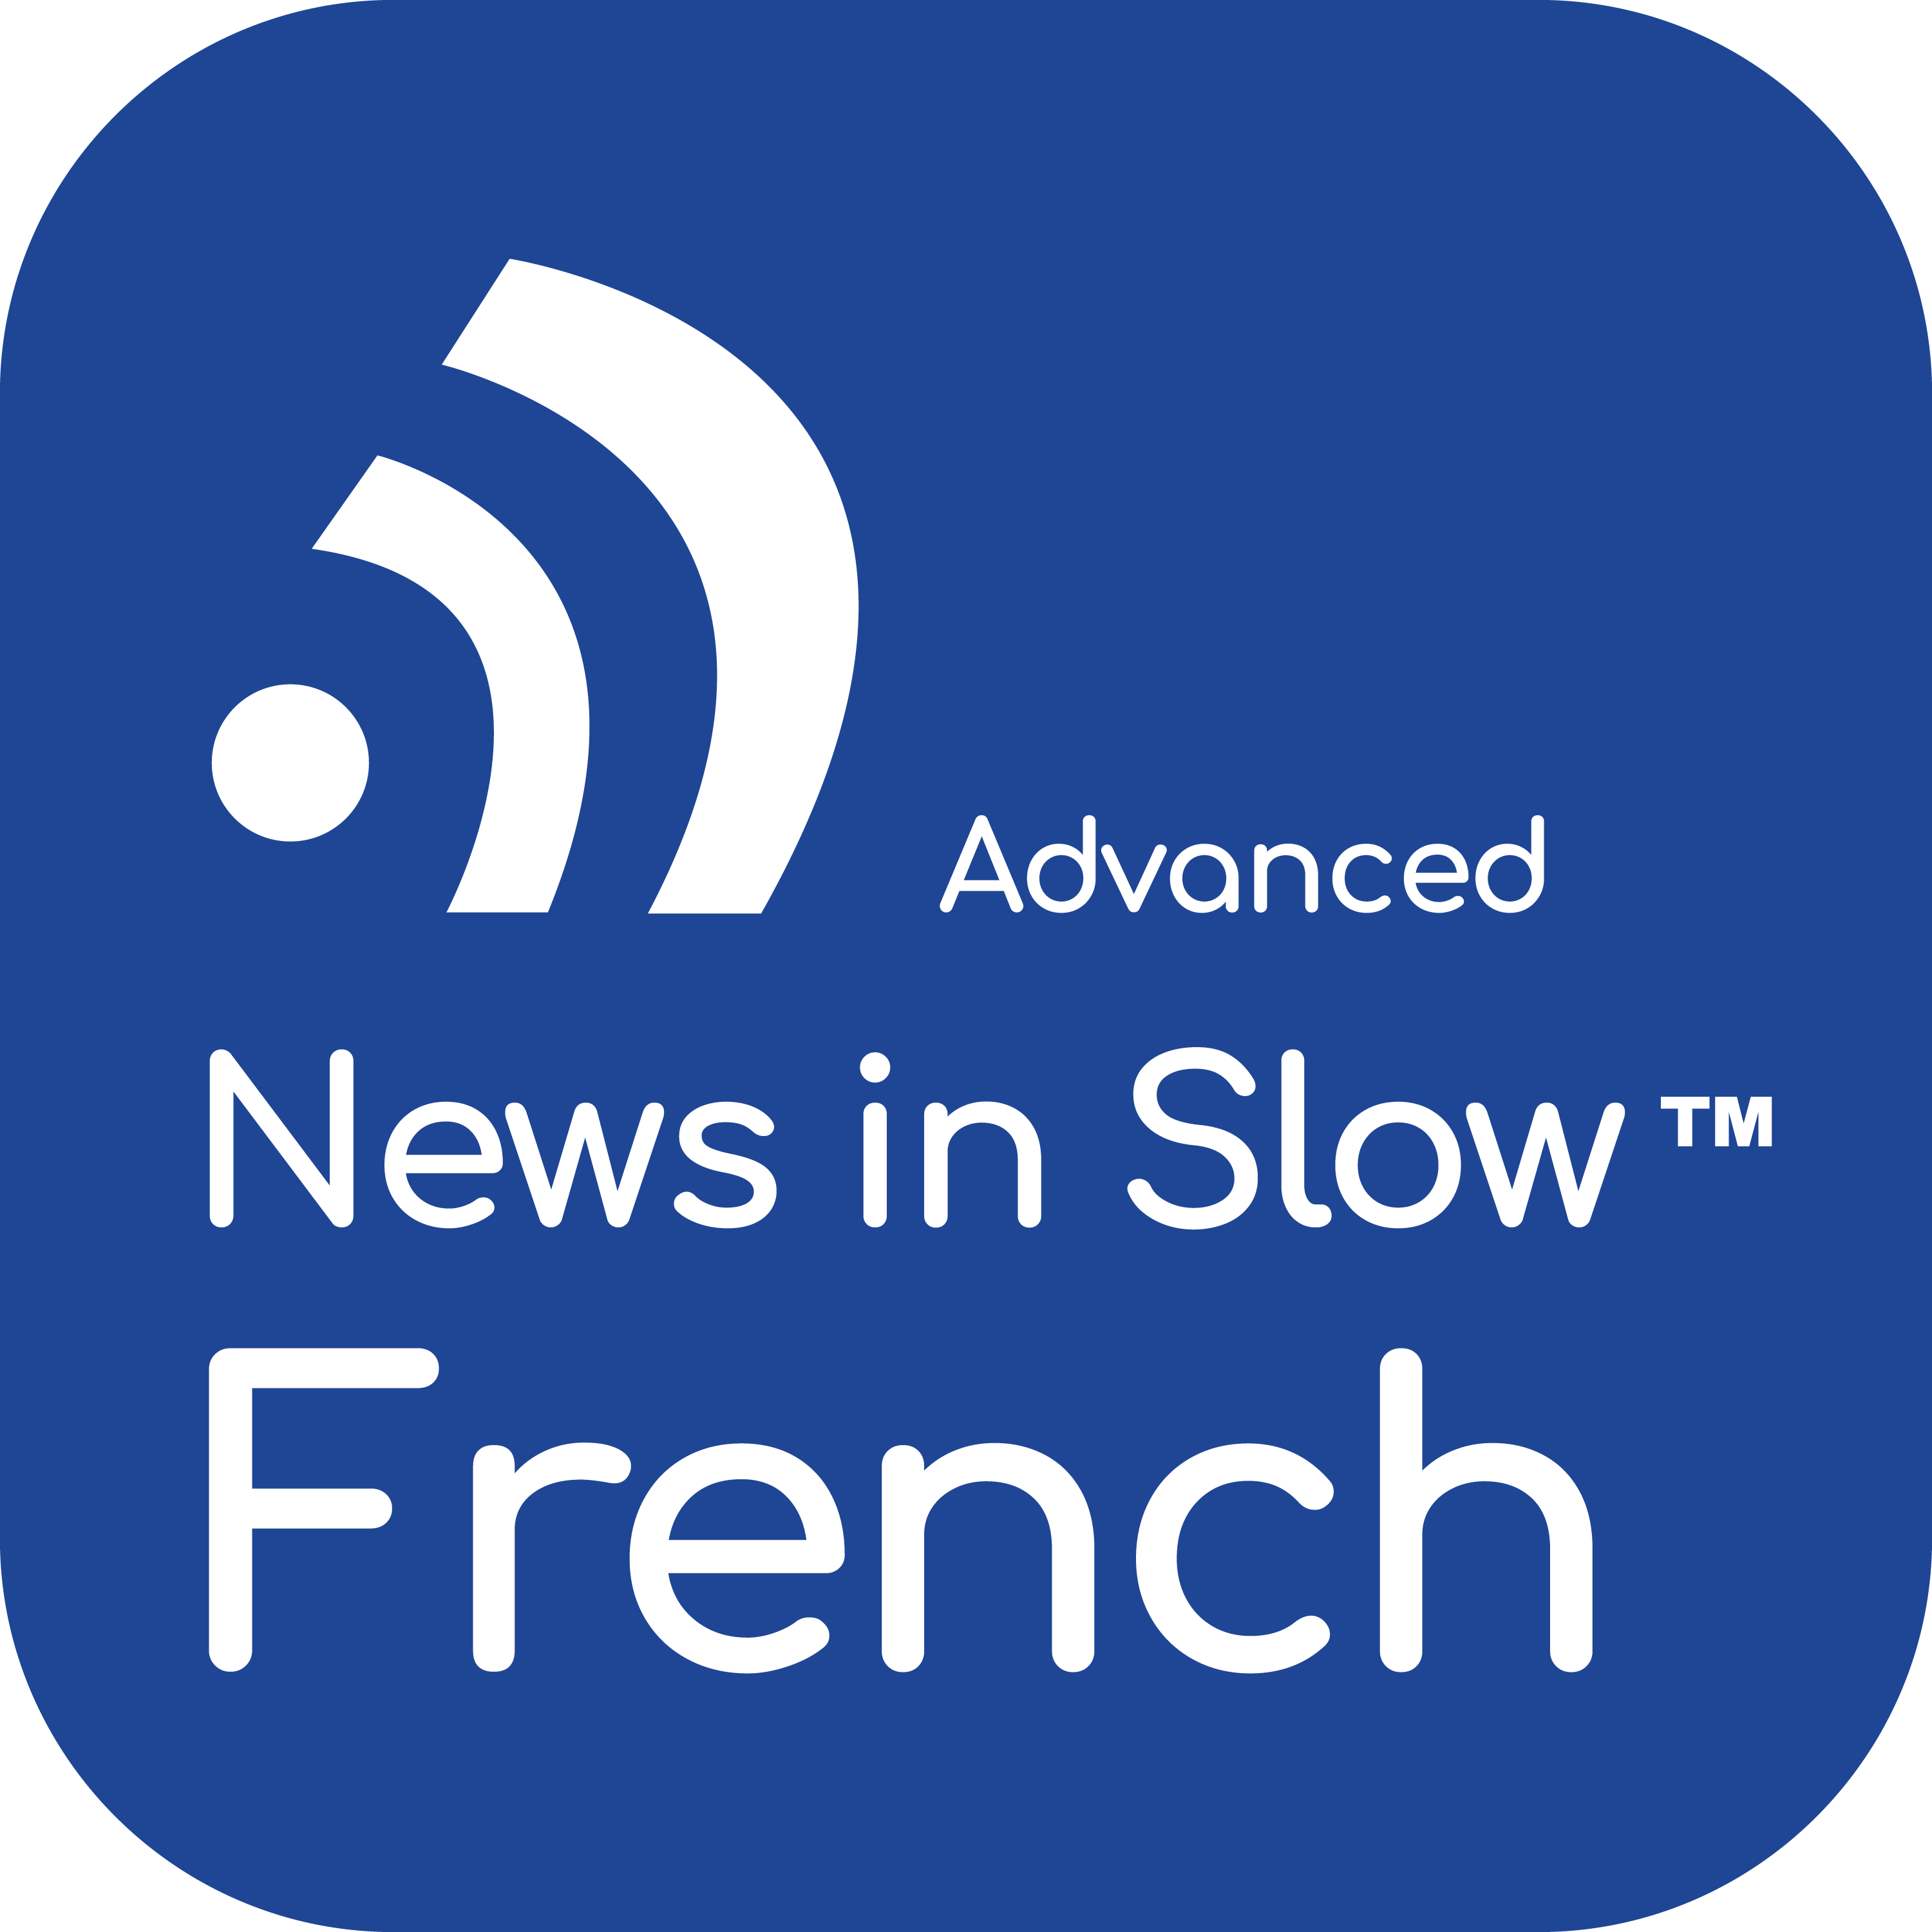 Advanced French 218 - World News, Opinion and Analysis in French